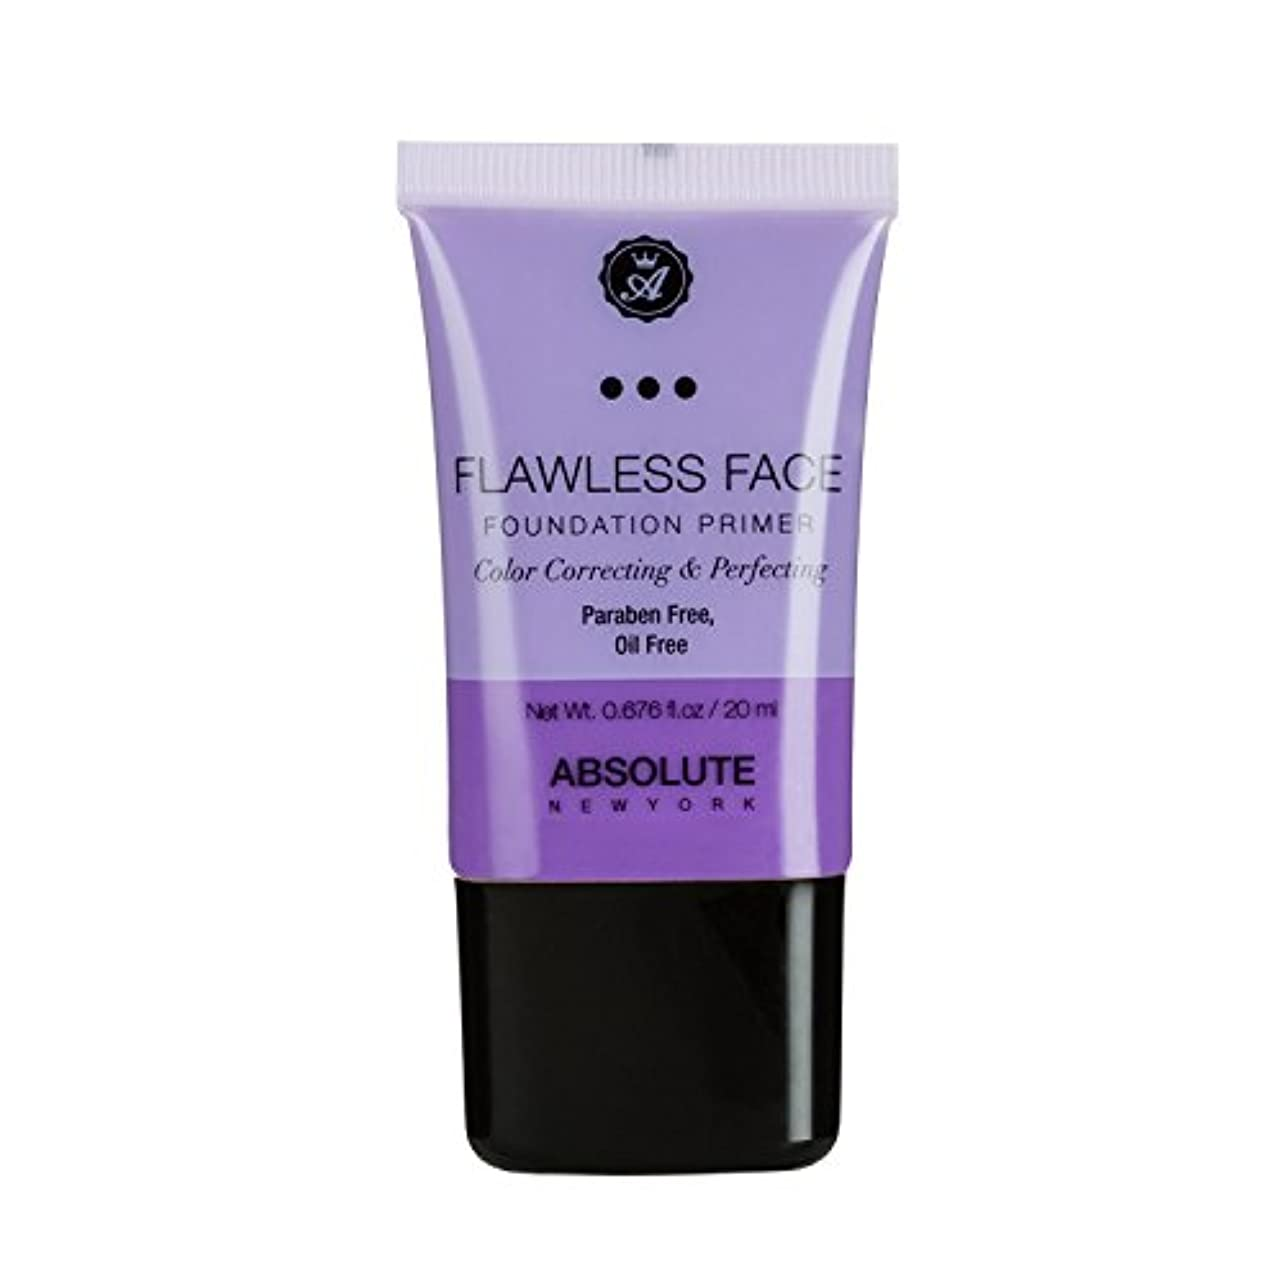 ラジエーター承認密接に(3 Pack) ABSOLUTE Flawless Foundation Primer - Lavender (並行輸入品)